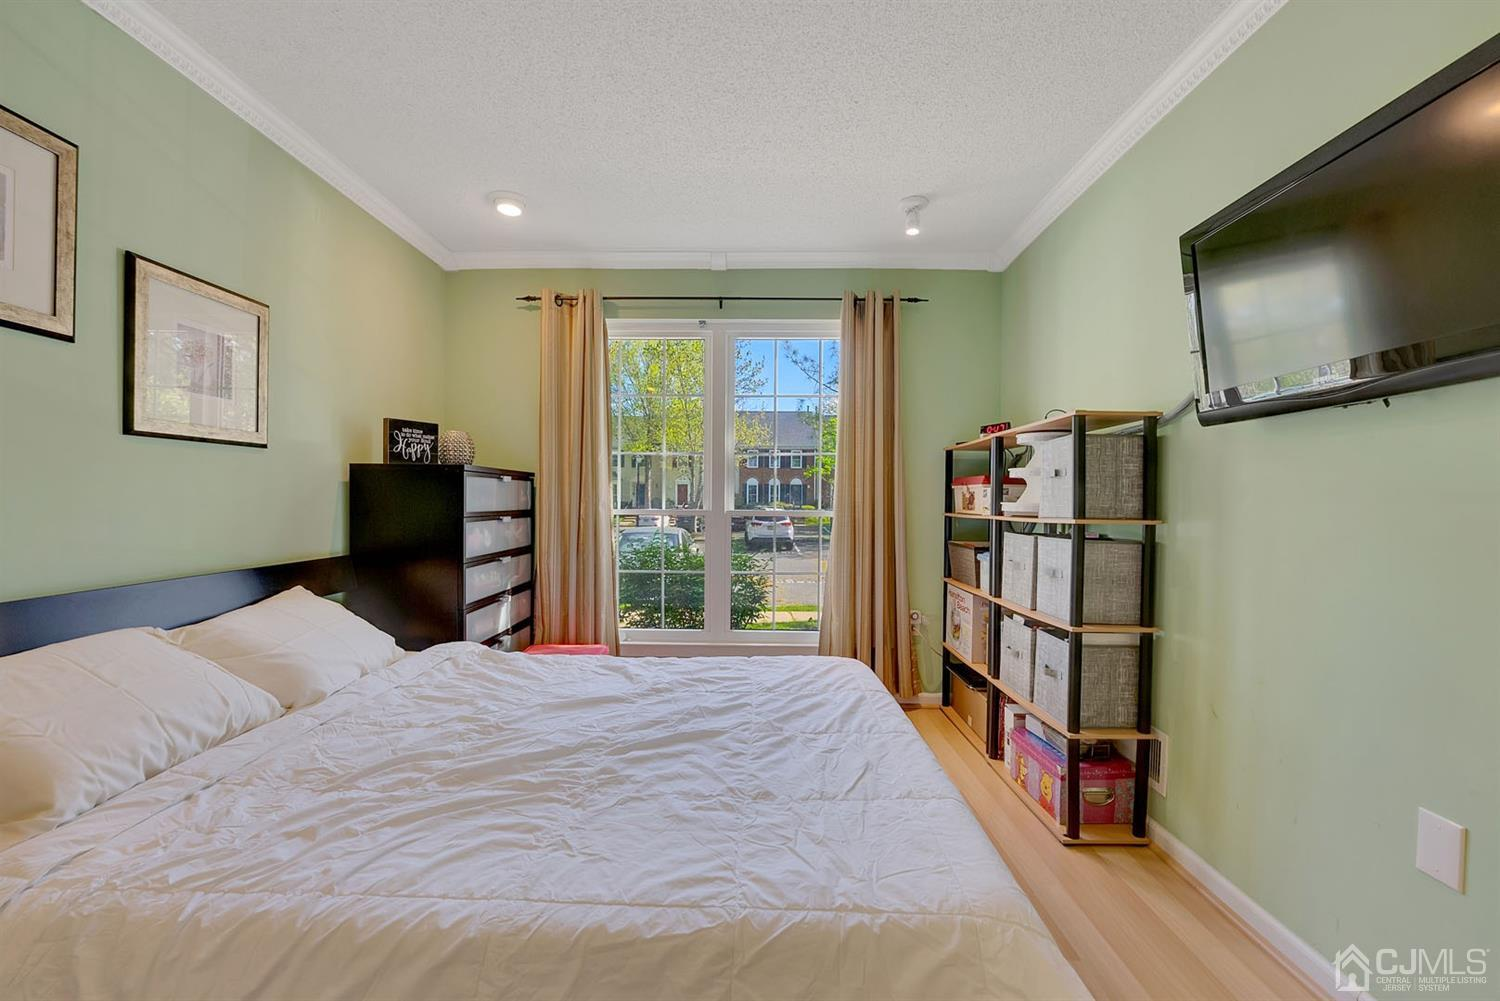 2nd bedroom with laminate floors and recessed lights